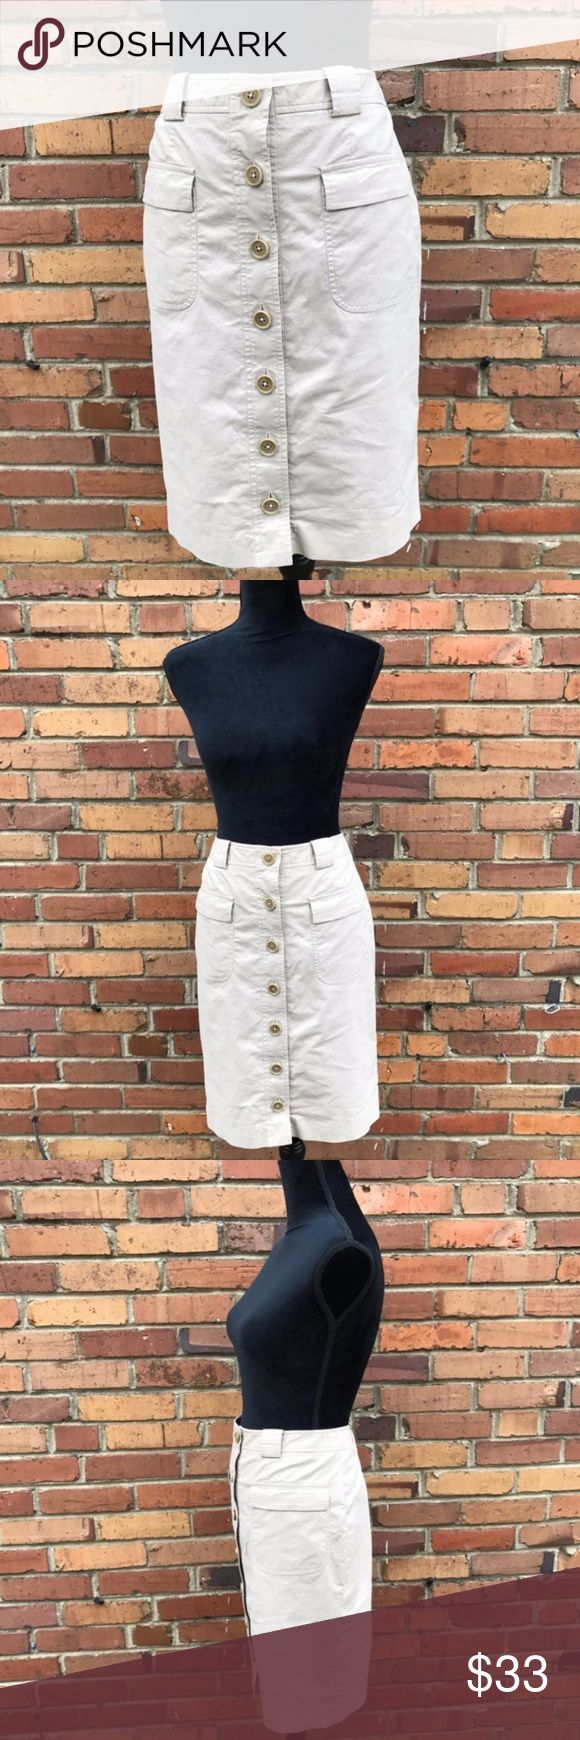 Brooks Brothers Khaki Skirt Size 8 Petite This mid rise, straight skirt looks great on so many body types. It has a vent at the back so it's easy to walk in. You can dress it up or down, add a cold shoulder top and some wedges for going out or sandals and a tank for hanging out. You'll get so much wear out of this skirt this summer and then you can throw some tights under it for fall and winter! Preowned from a smoke free home, in excellent used condition. Check out other listings in my…